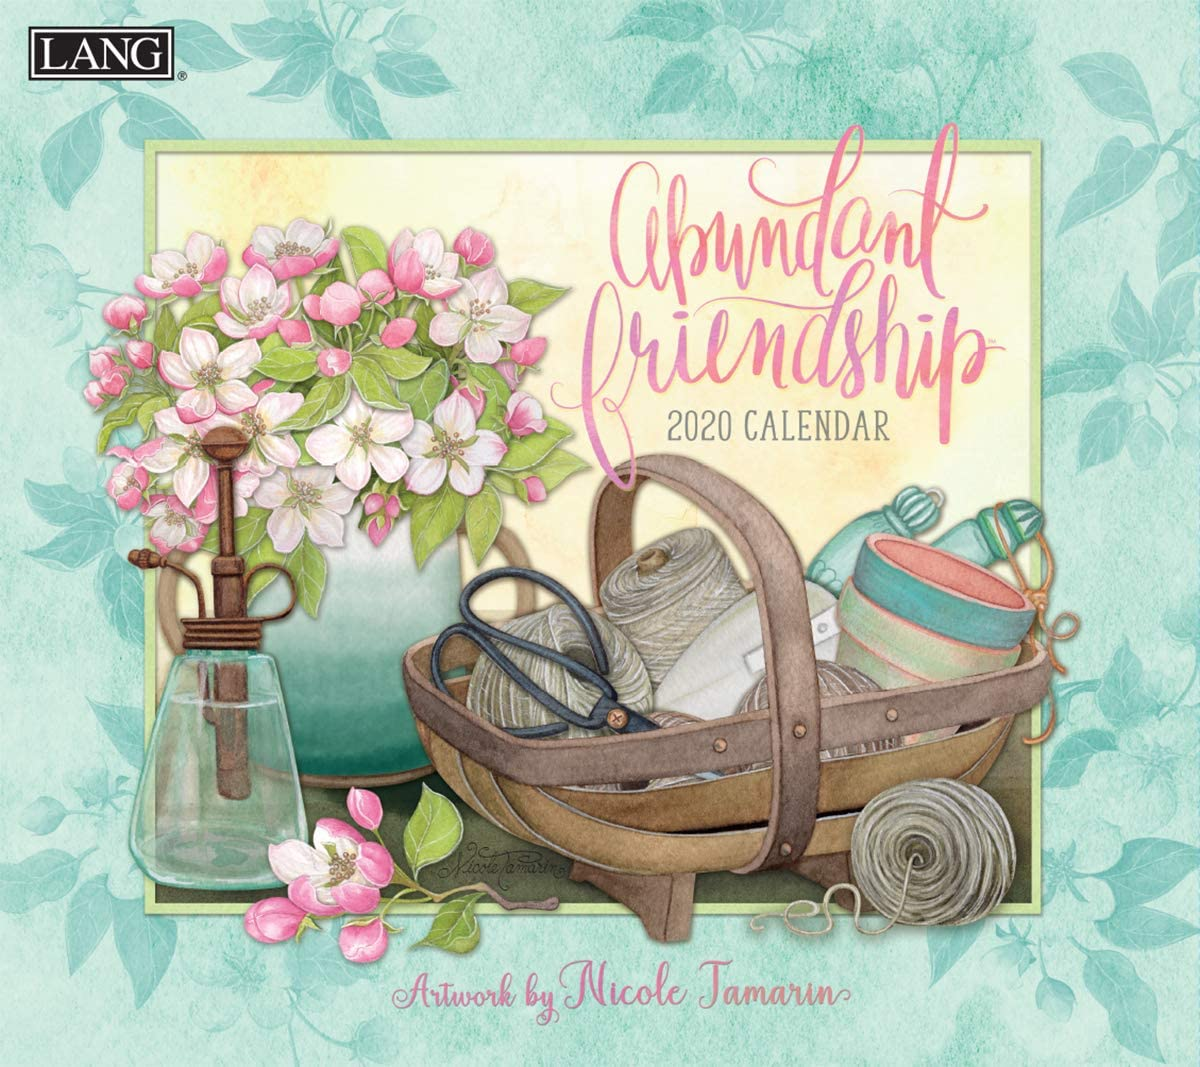 The LANG 20991001889 Abundant Friendship 2020 Wall Calendar (20991002005)